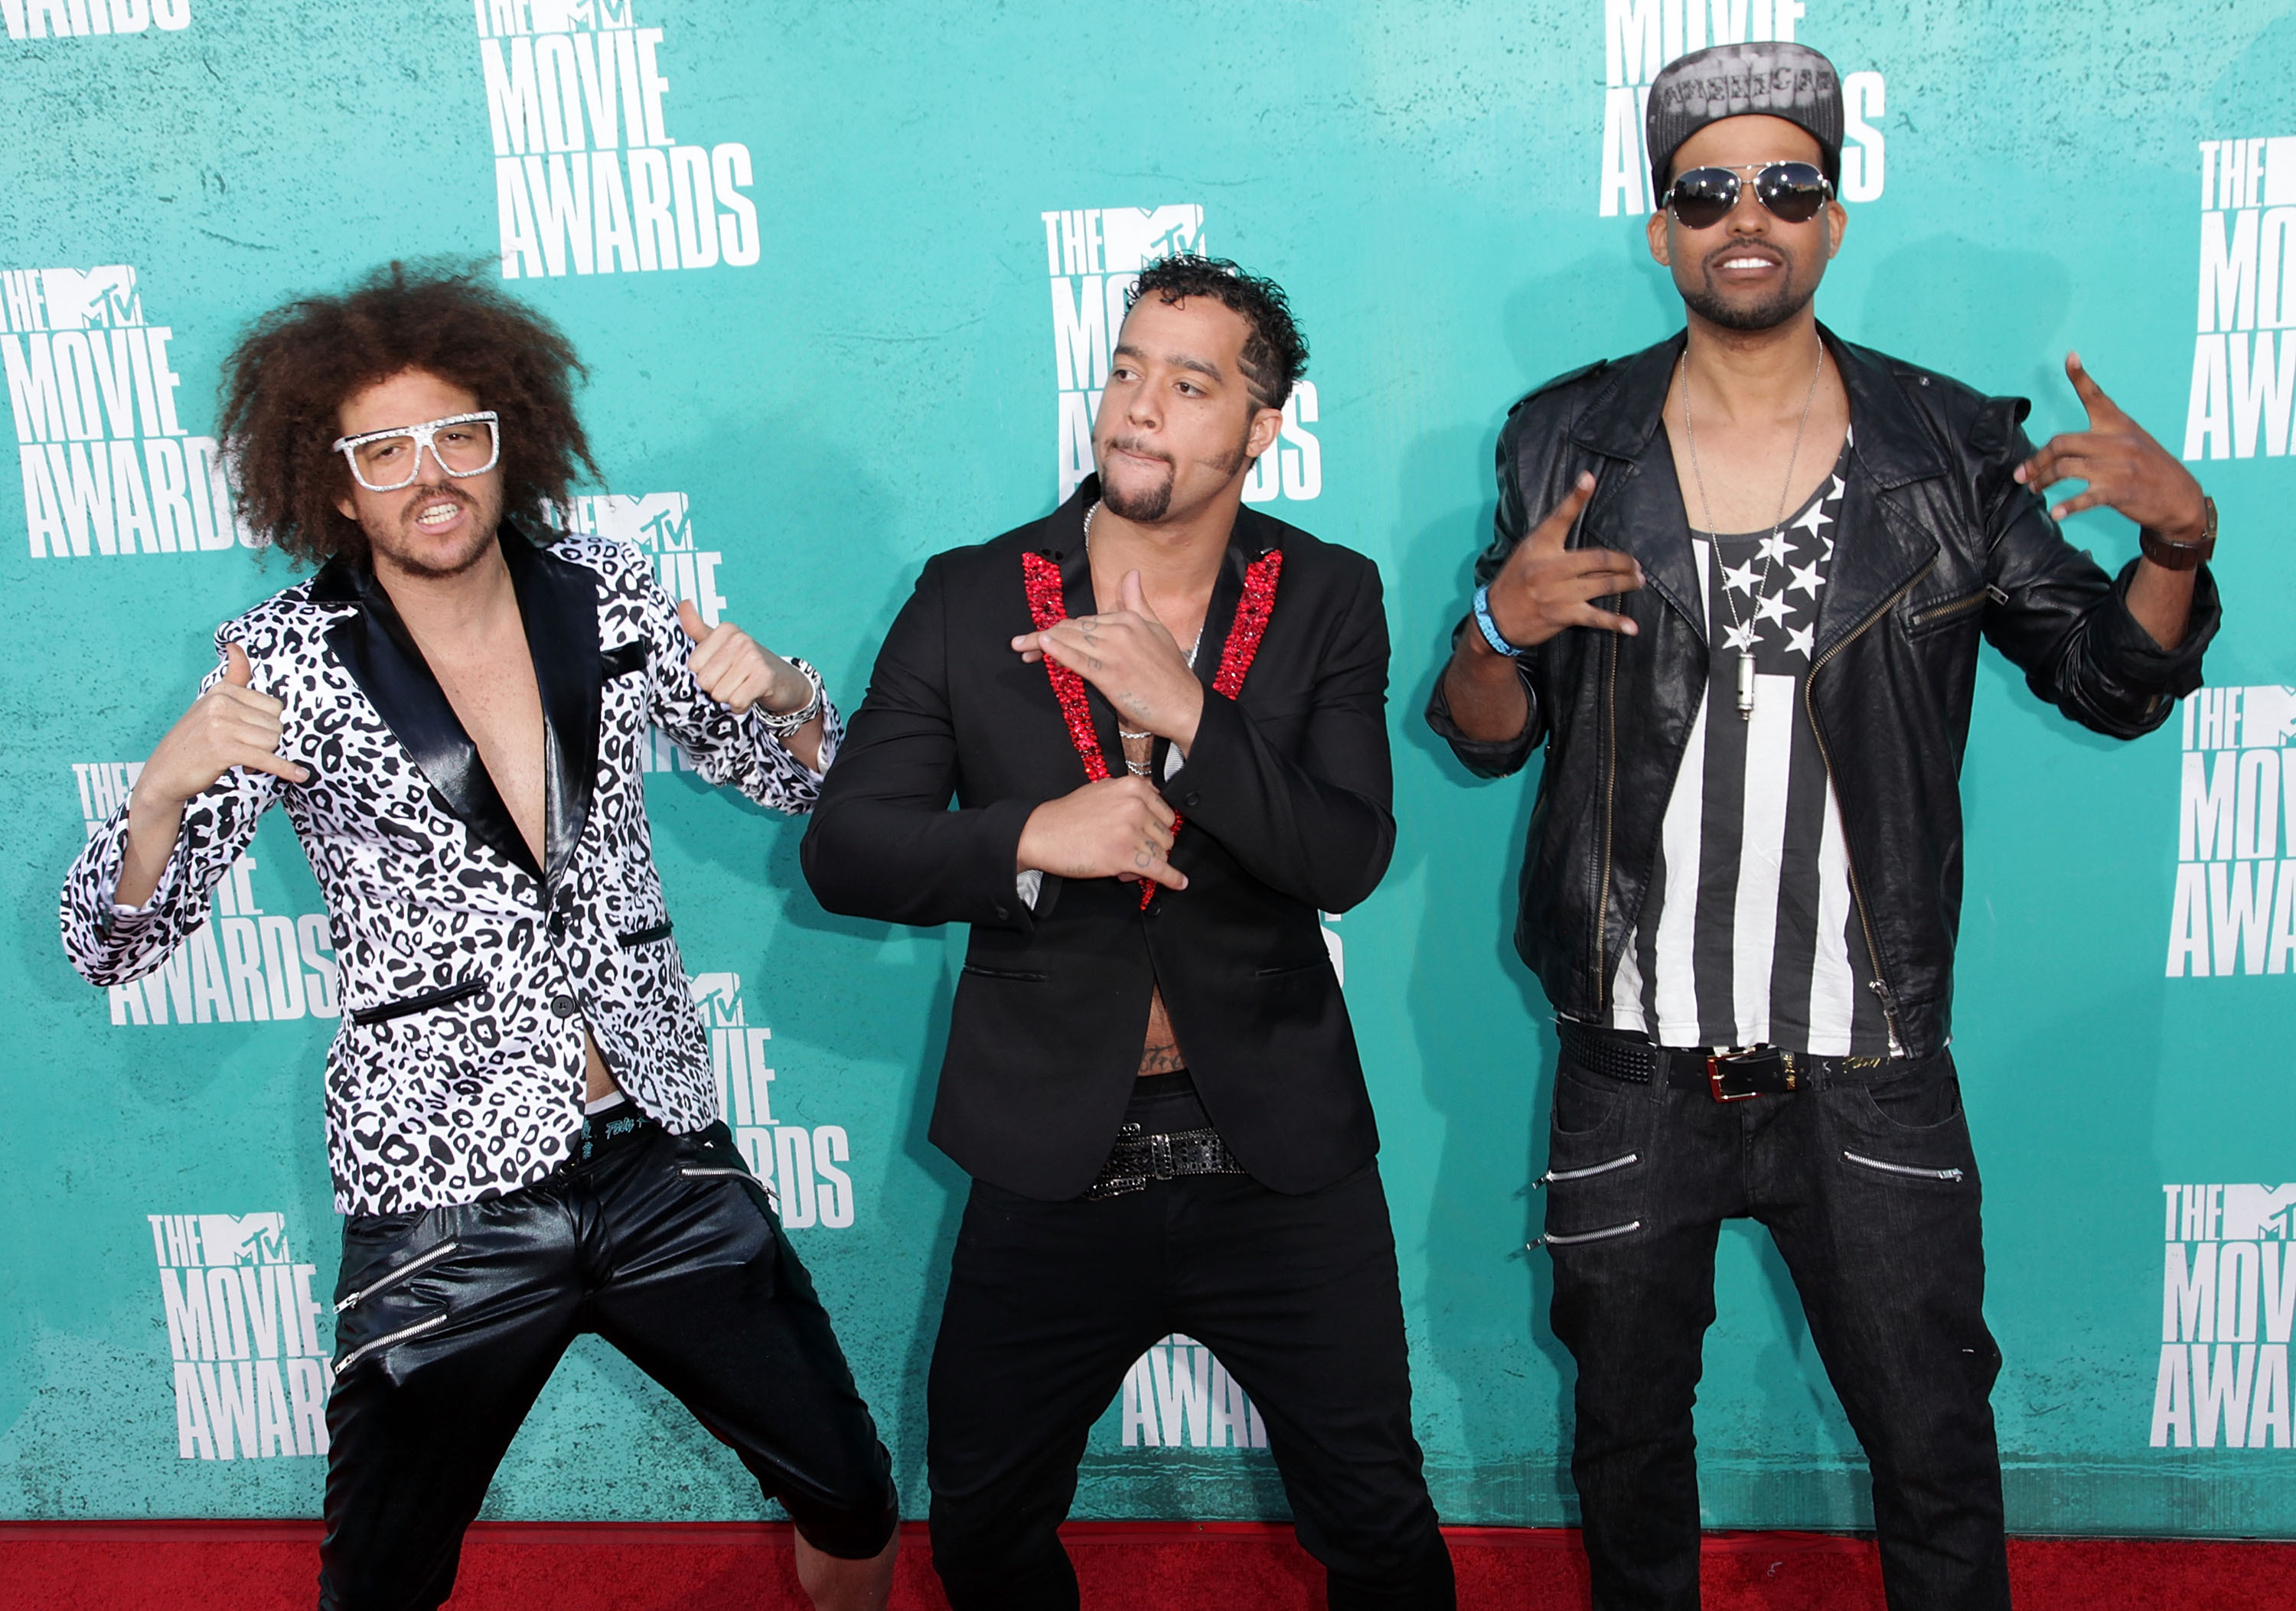 Did LMFAO get the short end of the stick?